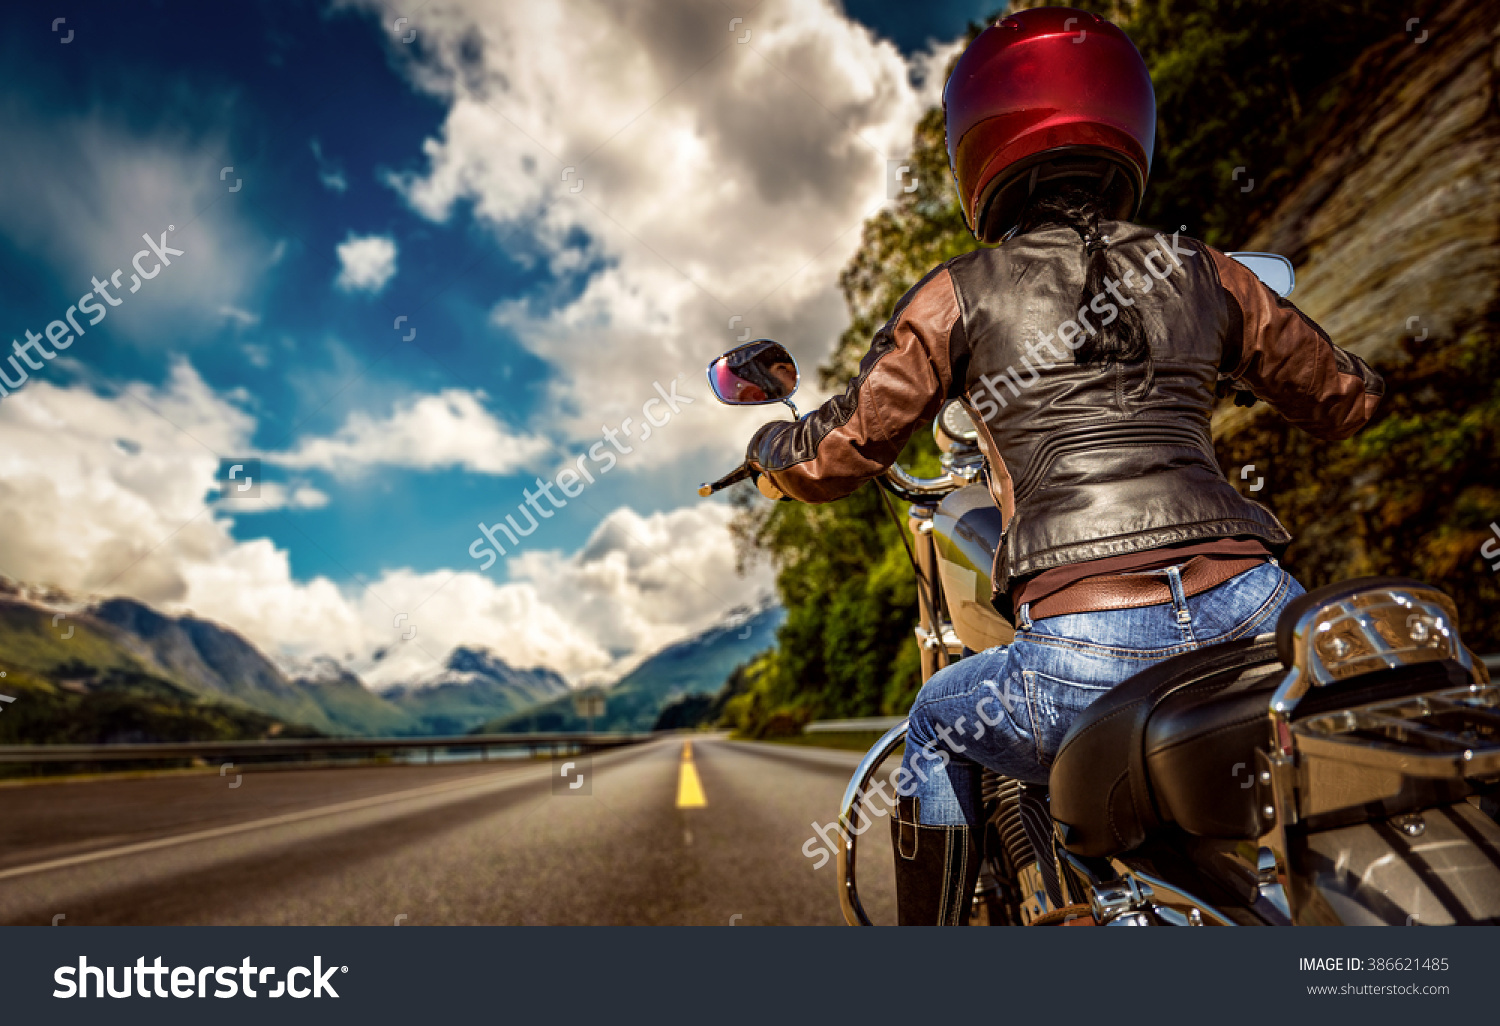 Woomen on the motorcycle